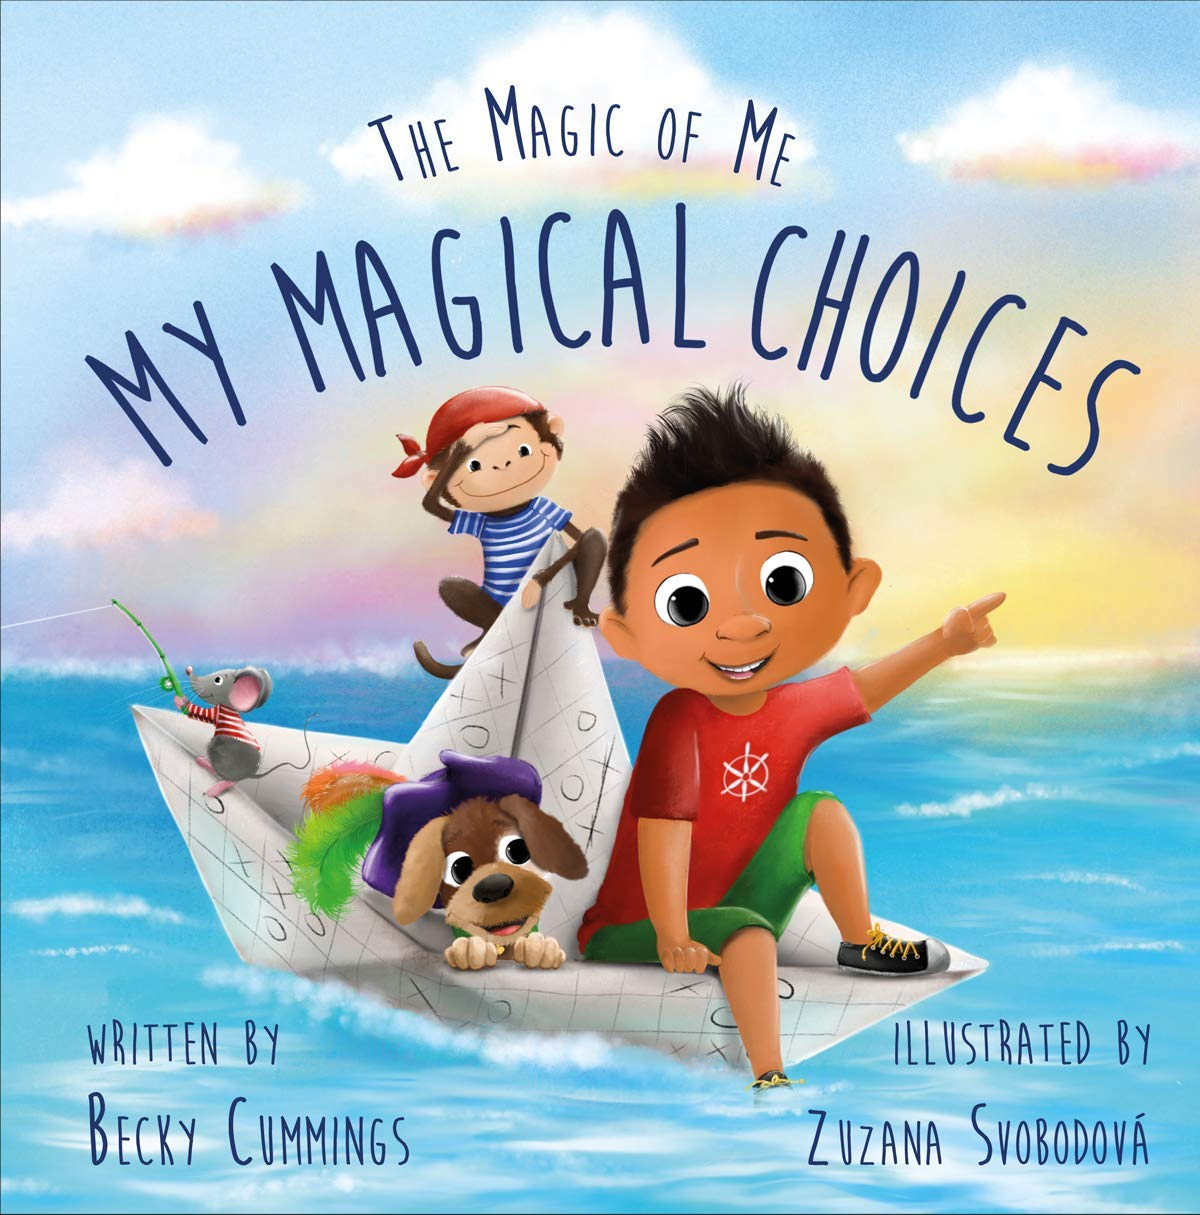 Amazon.com: My Magical Choices (The Magic of Me Series ...